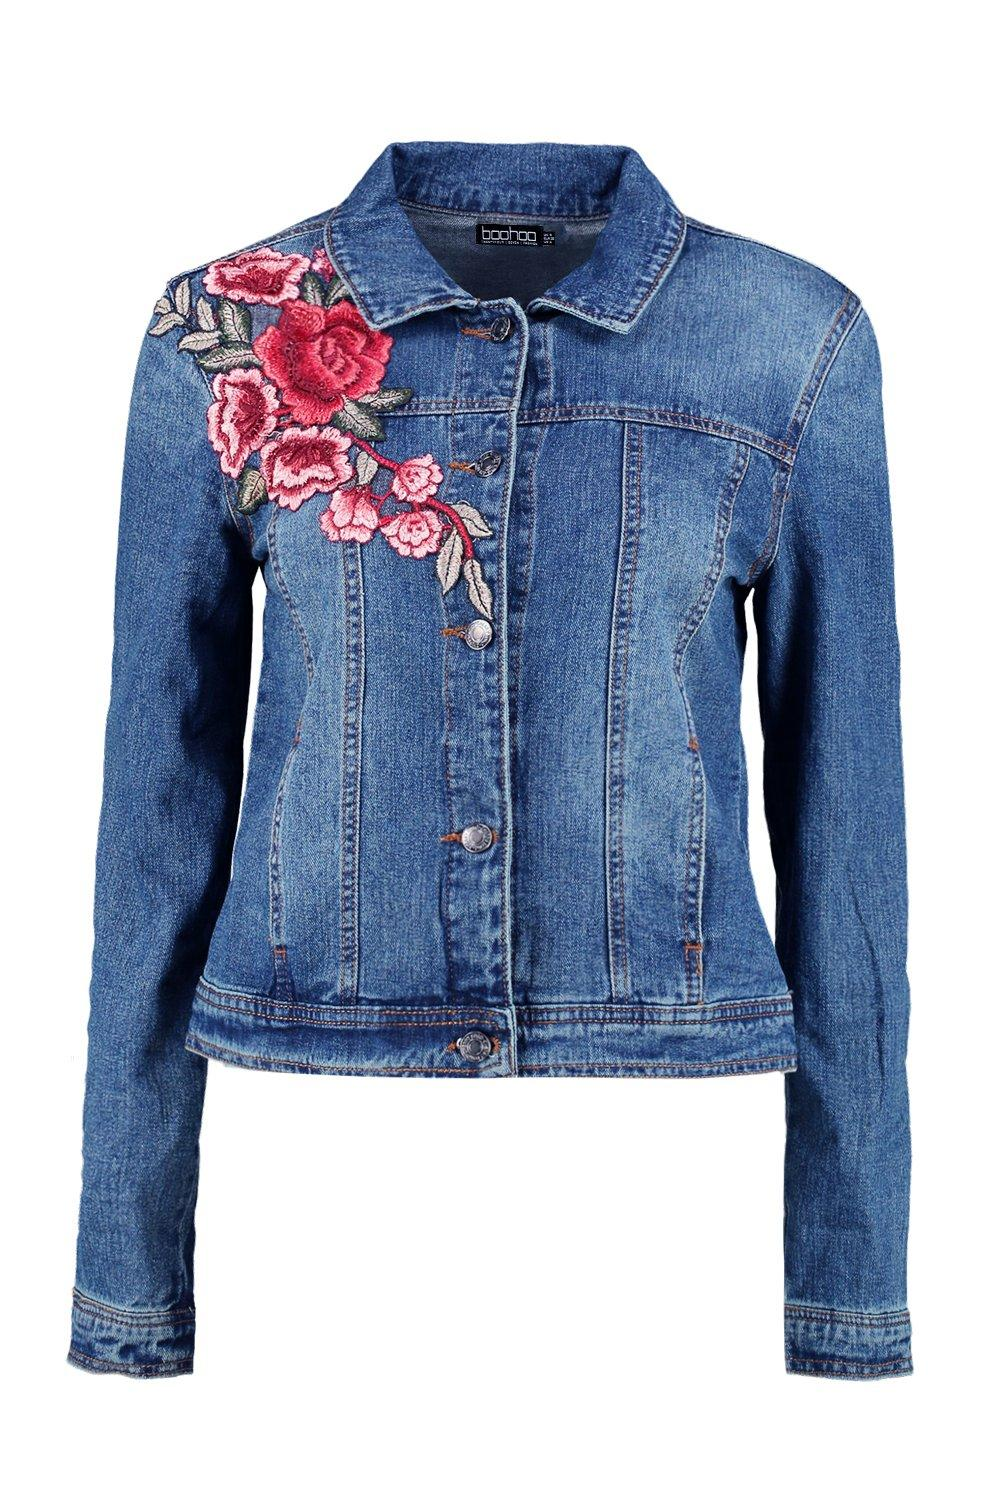 Boohoo womens ava denim floral embroidered jacket in blue